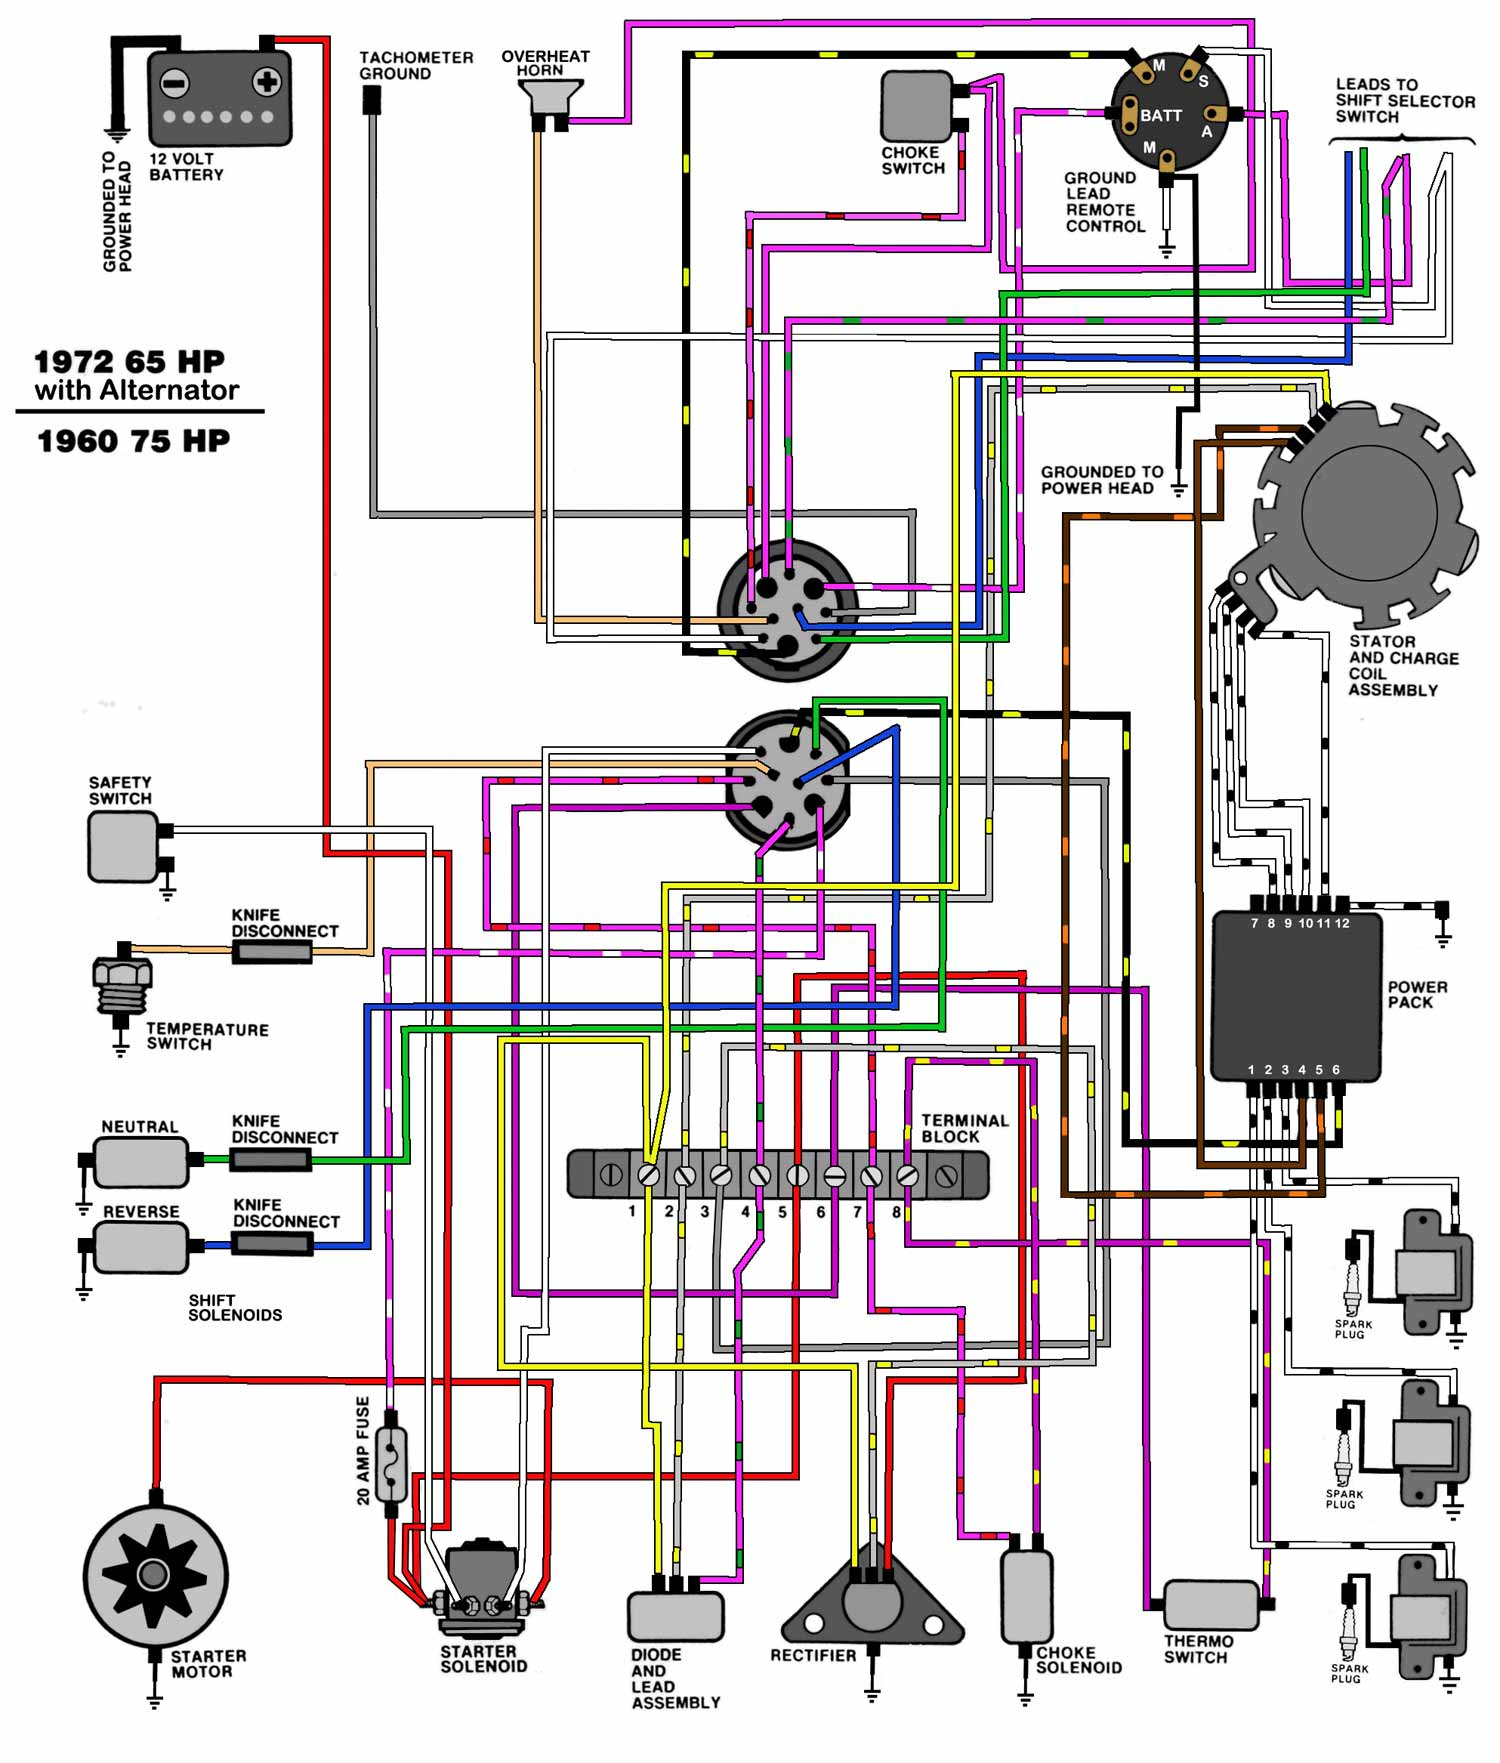 Funky Honda 400ex Wiring Diagram Gallery - Electrical Diagram Ideas ...